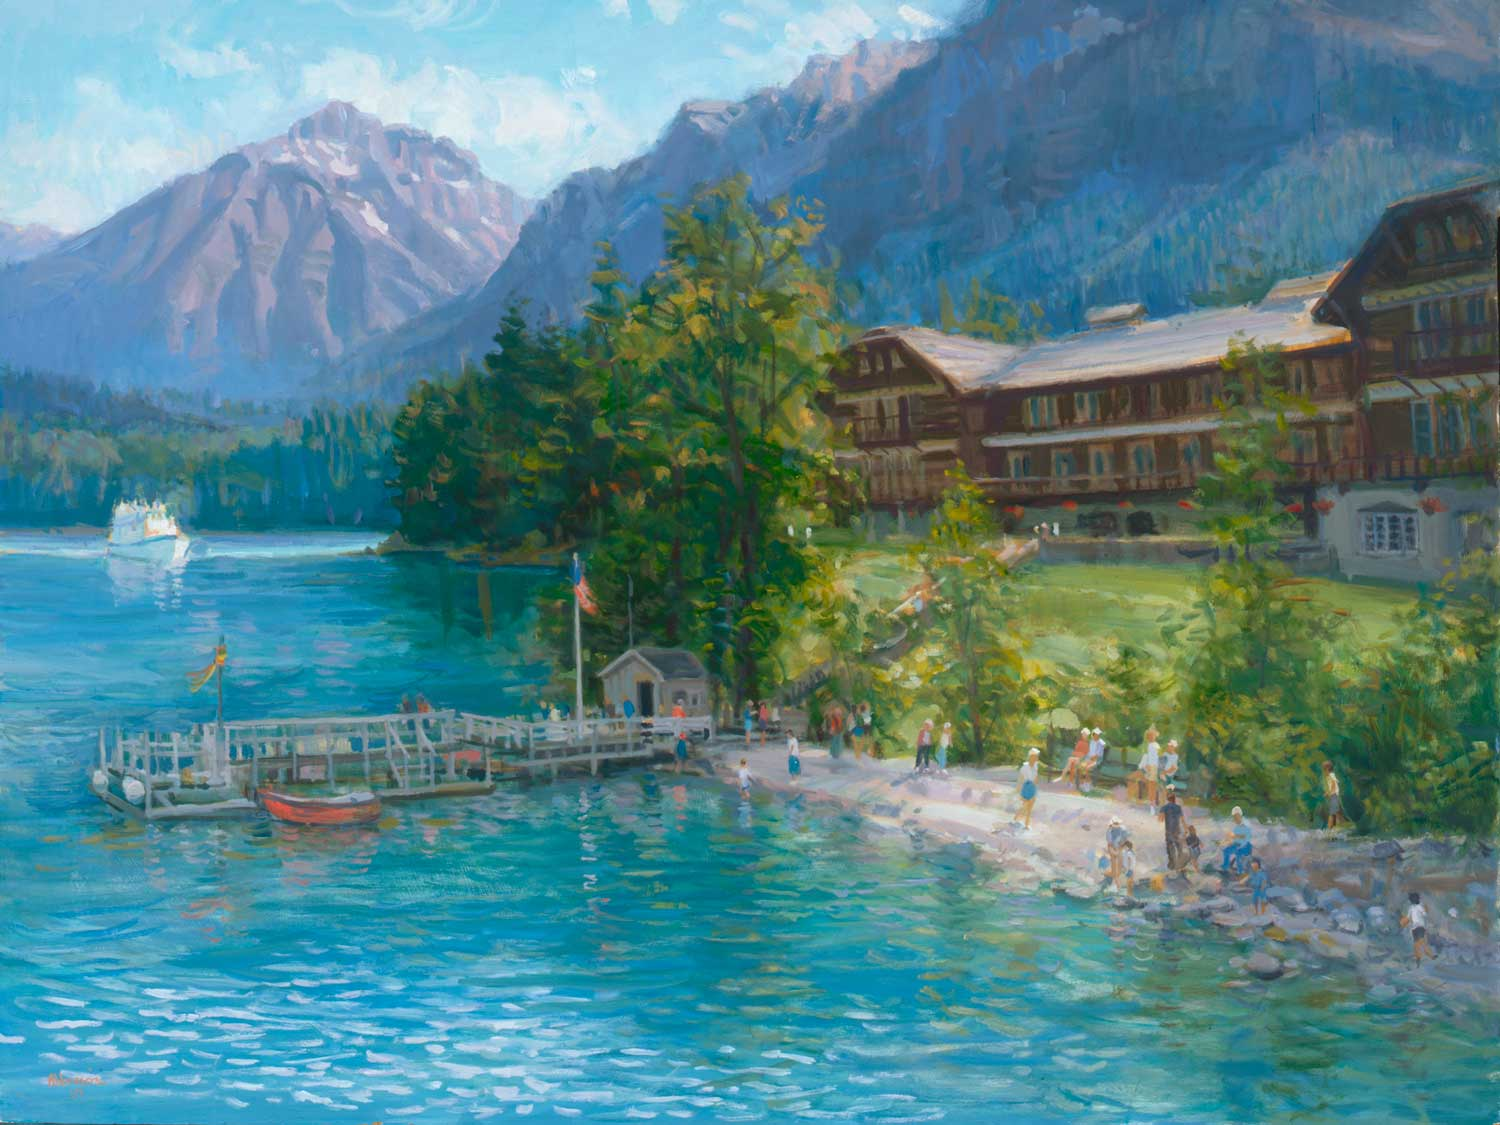 """Lake McDonald Lodge"" by Joe Abbrescia"